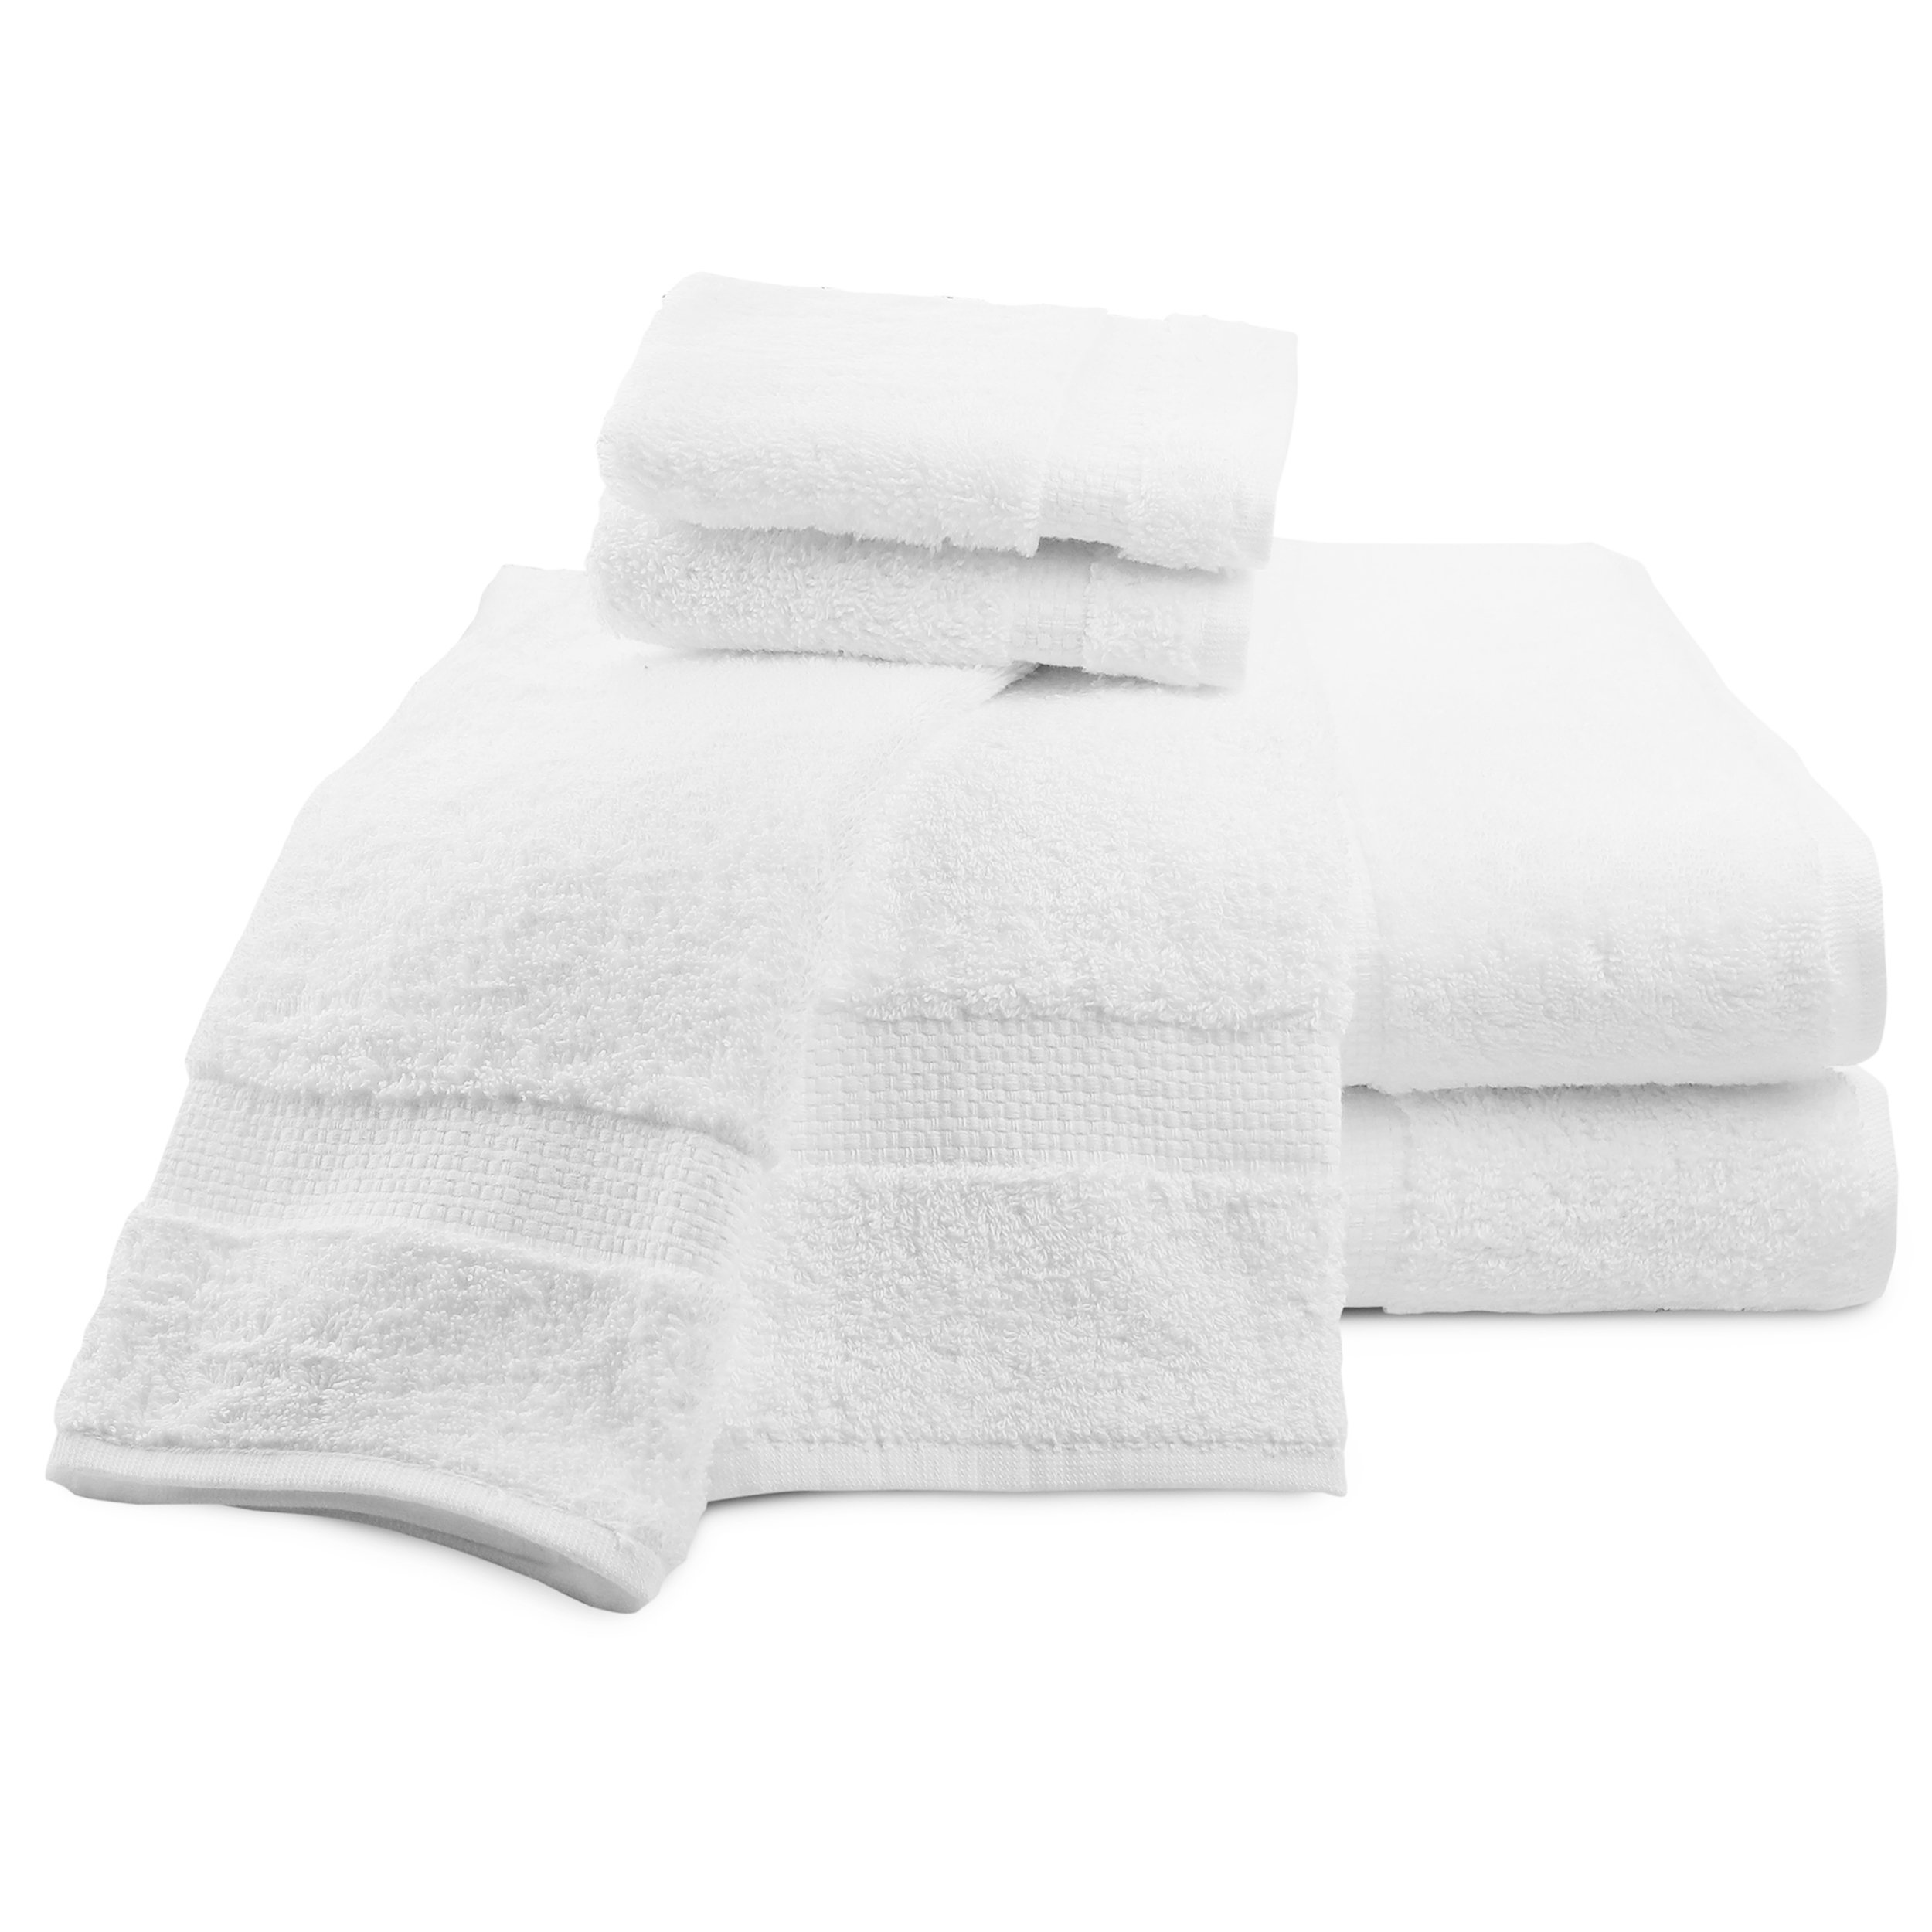 Luxor Linens Luxury 100% Cotton Giovanni Spa Set - Robe, Slippers & 3-Piece Towel Set - 2 Sets - Perfect for a Relaxing Spa Day at Home! by Luxor Linens (Image #5)